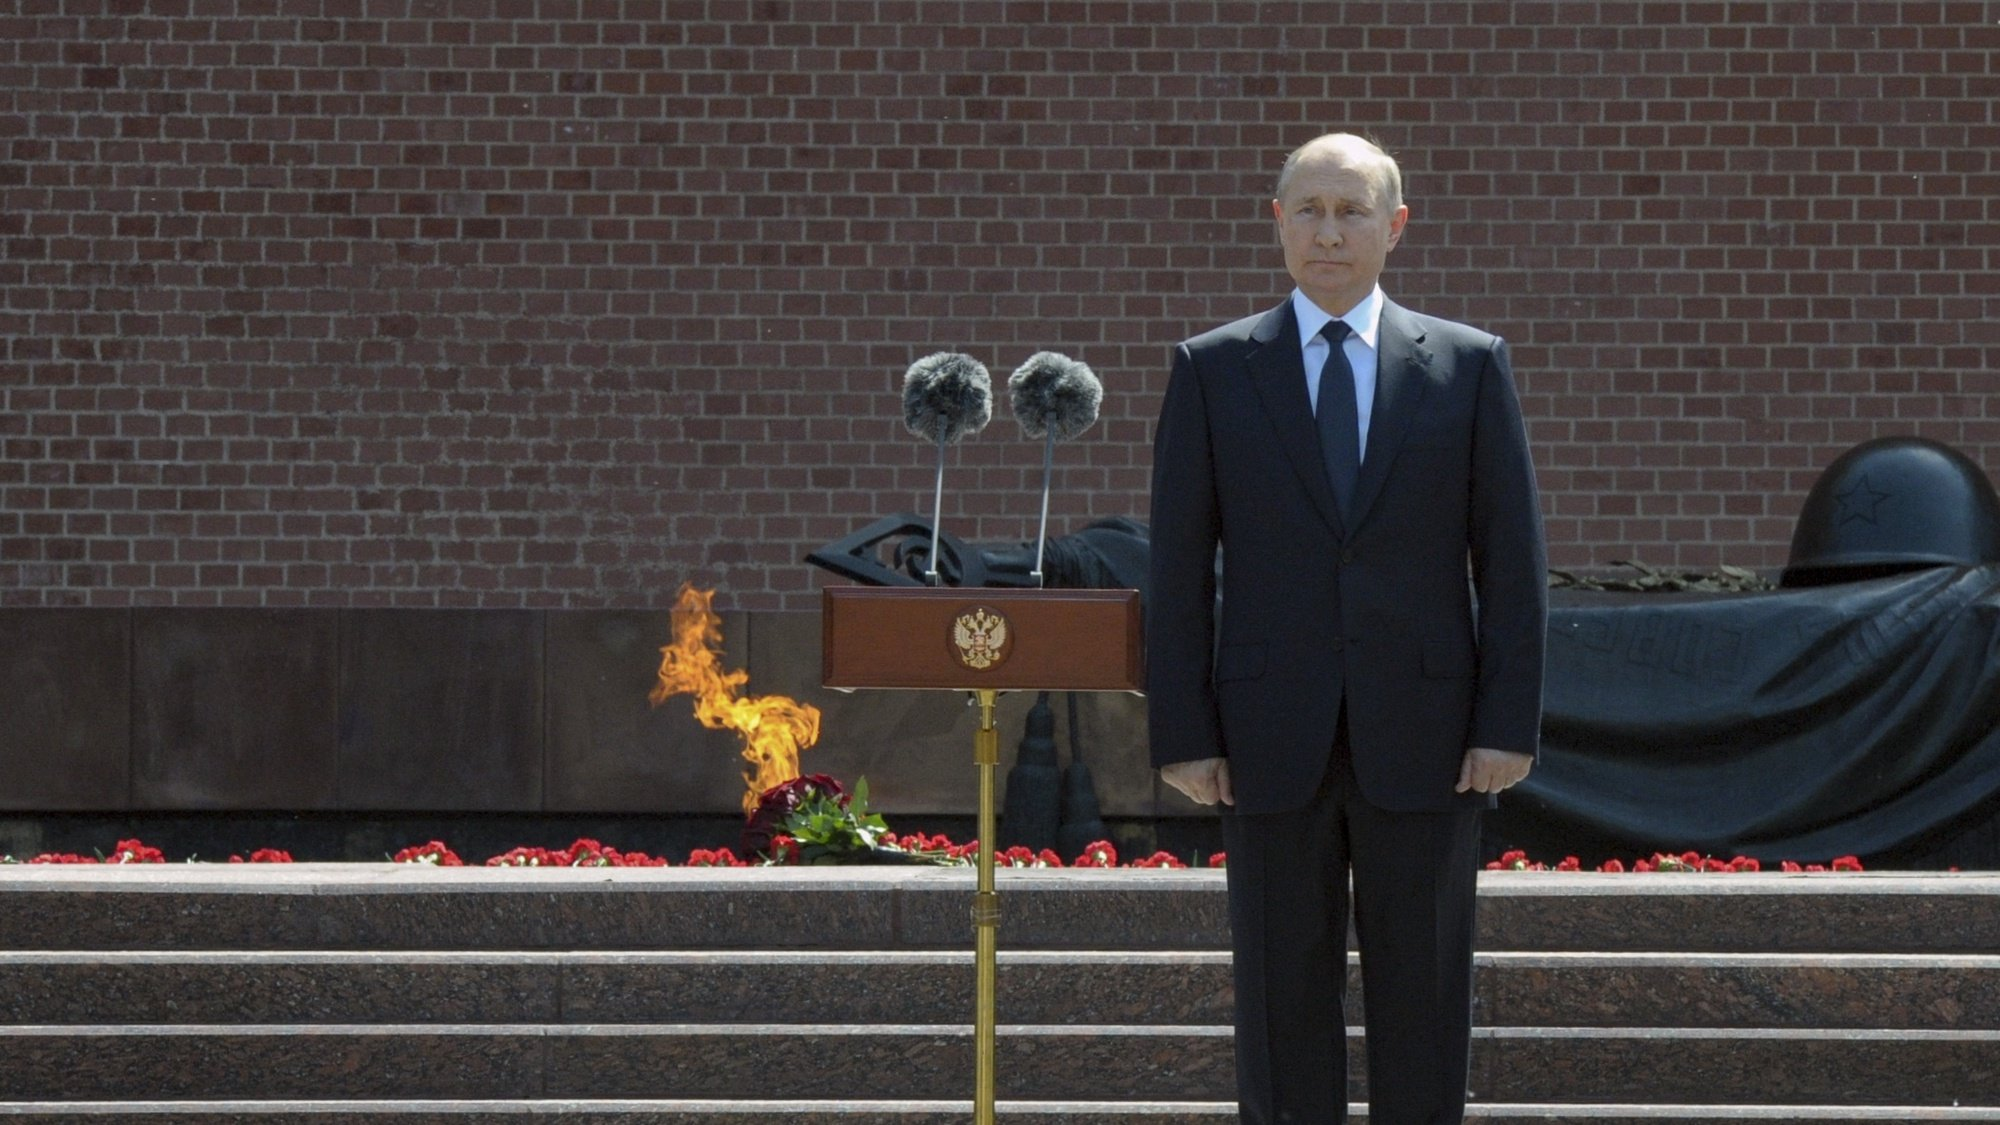 epa09292841 Russian President Vladimir Putin attends a wreath-laying ceremony at the Tomb of the Unknown Soldier in the Alexandrovsky Garden near the Kremlin wall in Moscow, Russia, 22 June 2021, to commemorate those who lost their lives defending the Soviet Union against Nazi invaders. Russia marks the Day of Memory and Sorrow on 22 June.  EPA/ALEXEI NIKOLSKY/SPUTNIK/KREMLIN POOL MANDATORY CREDIT